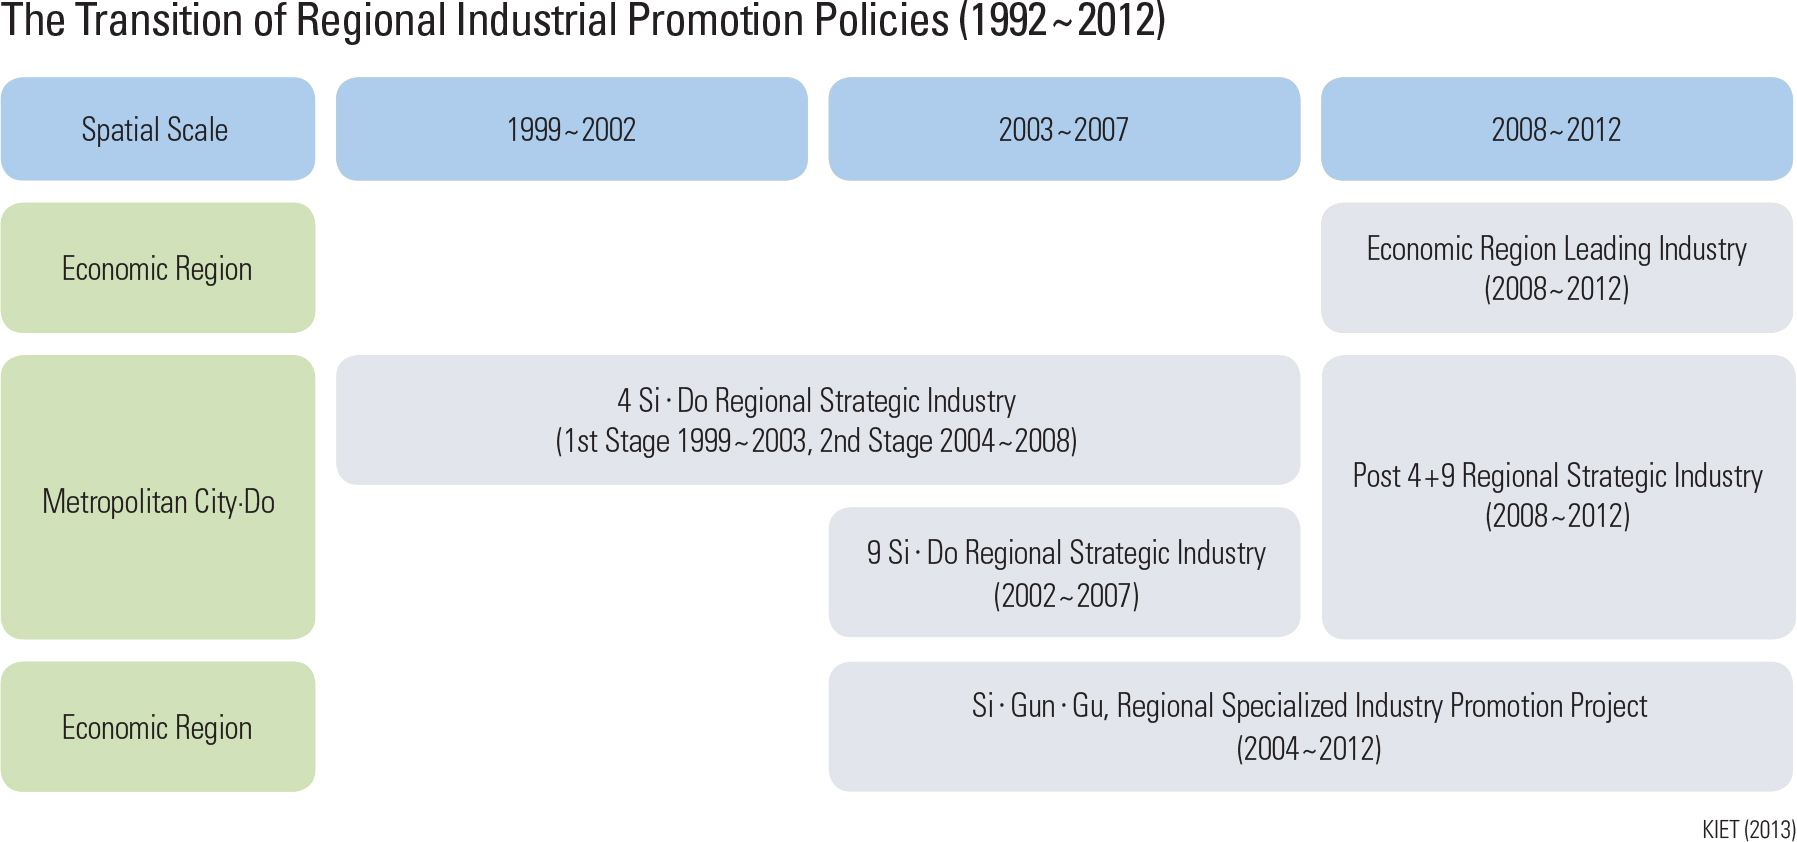 The Transition of Regional Industrial Promotion Policies